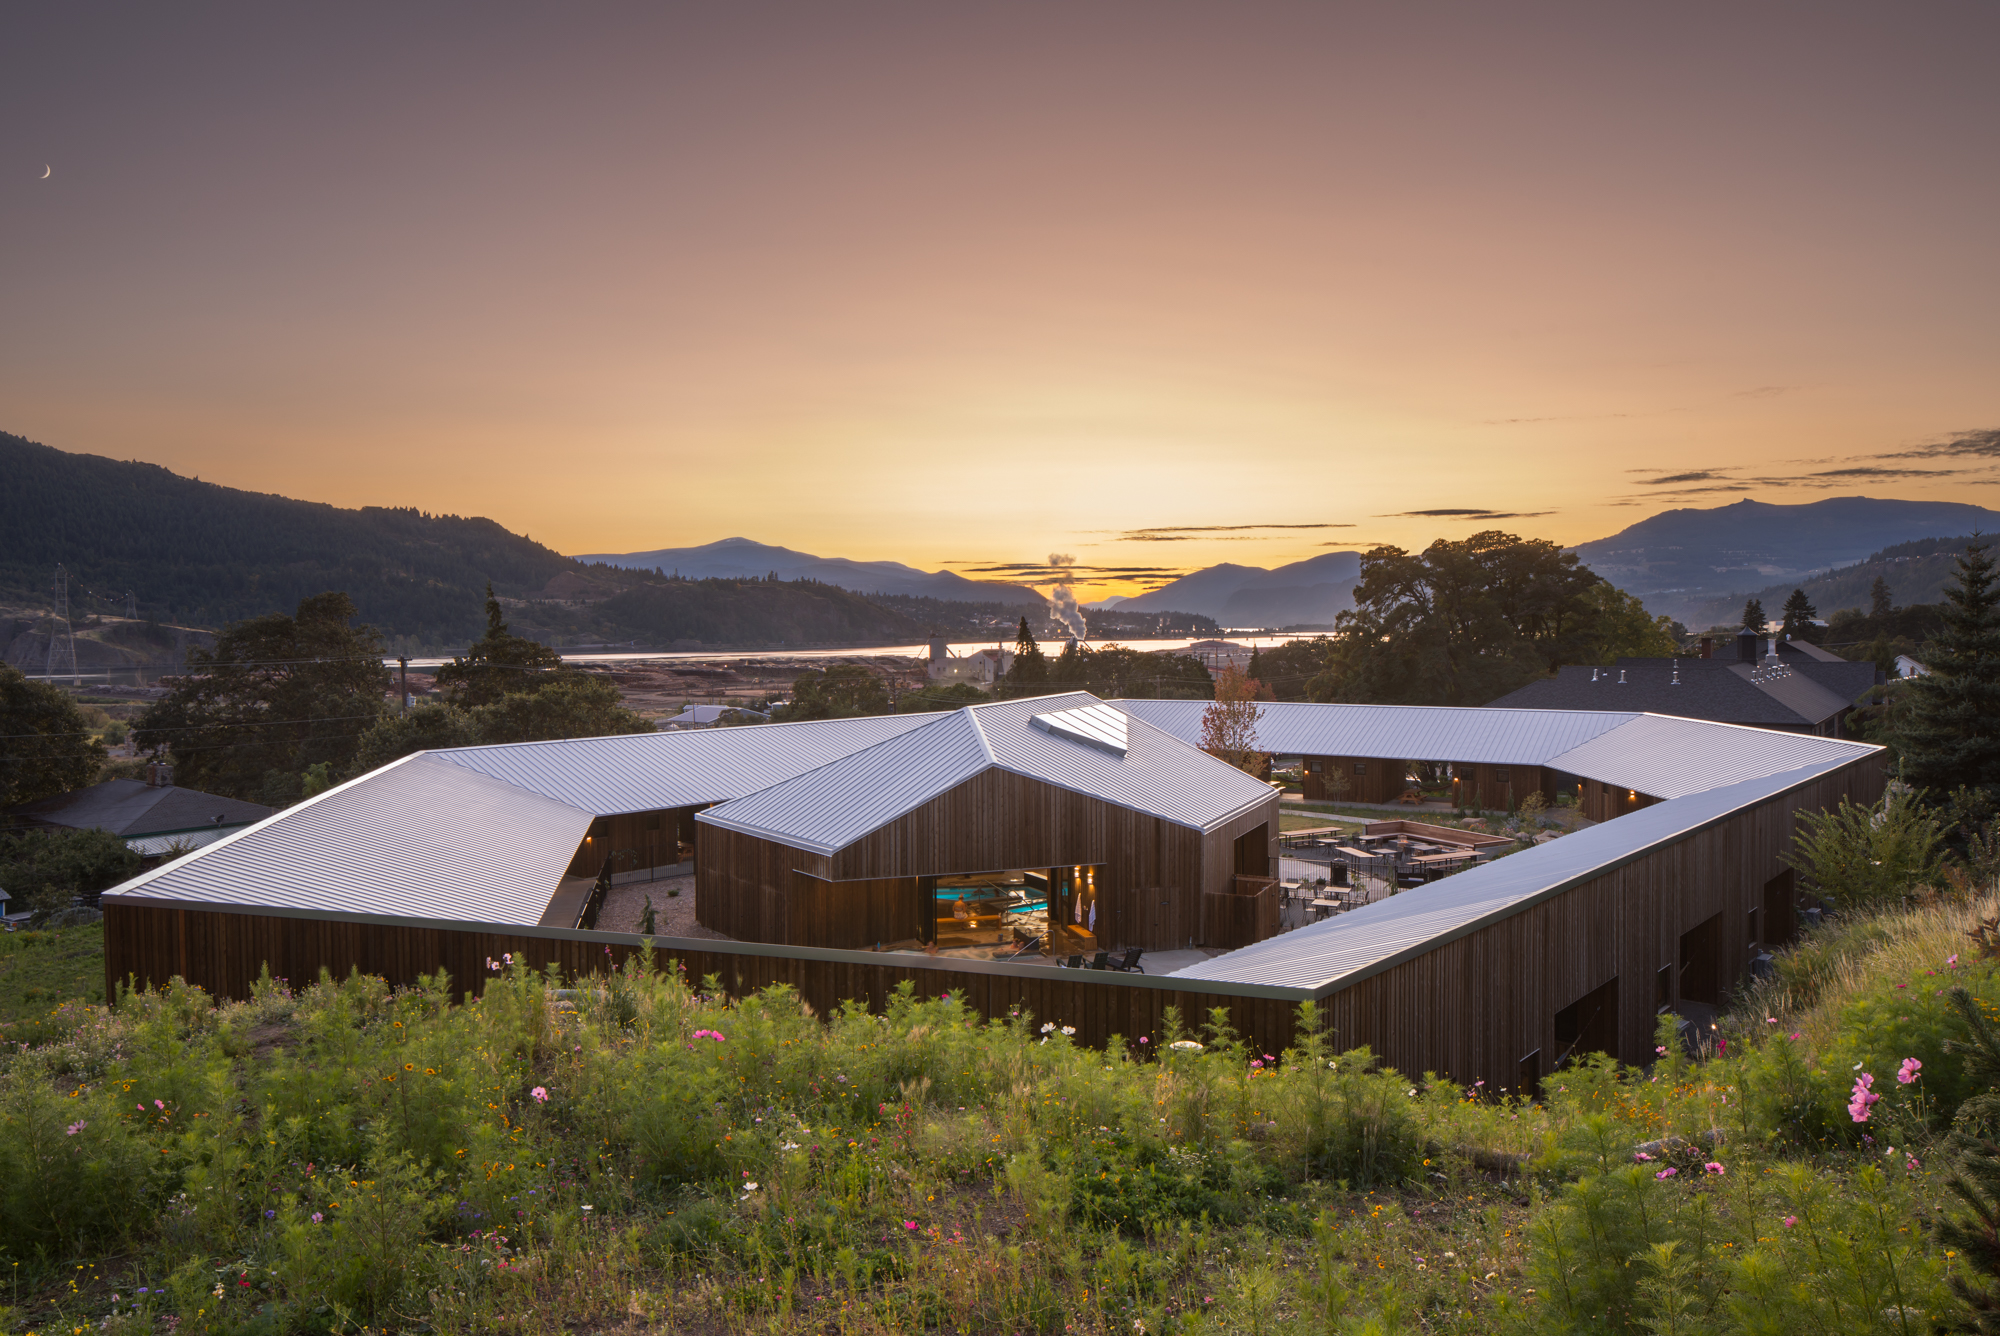 1900s schoolhouse renovated into rustic yet modern hotel